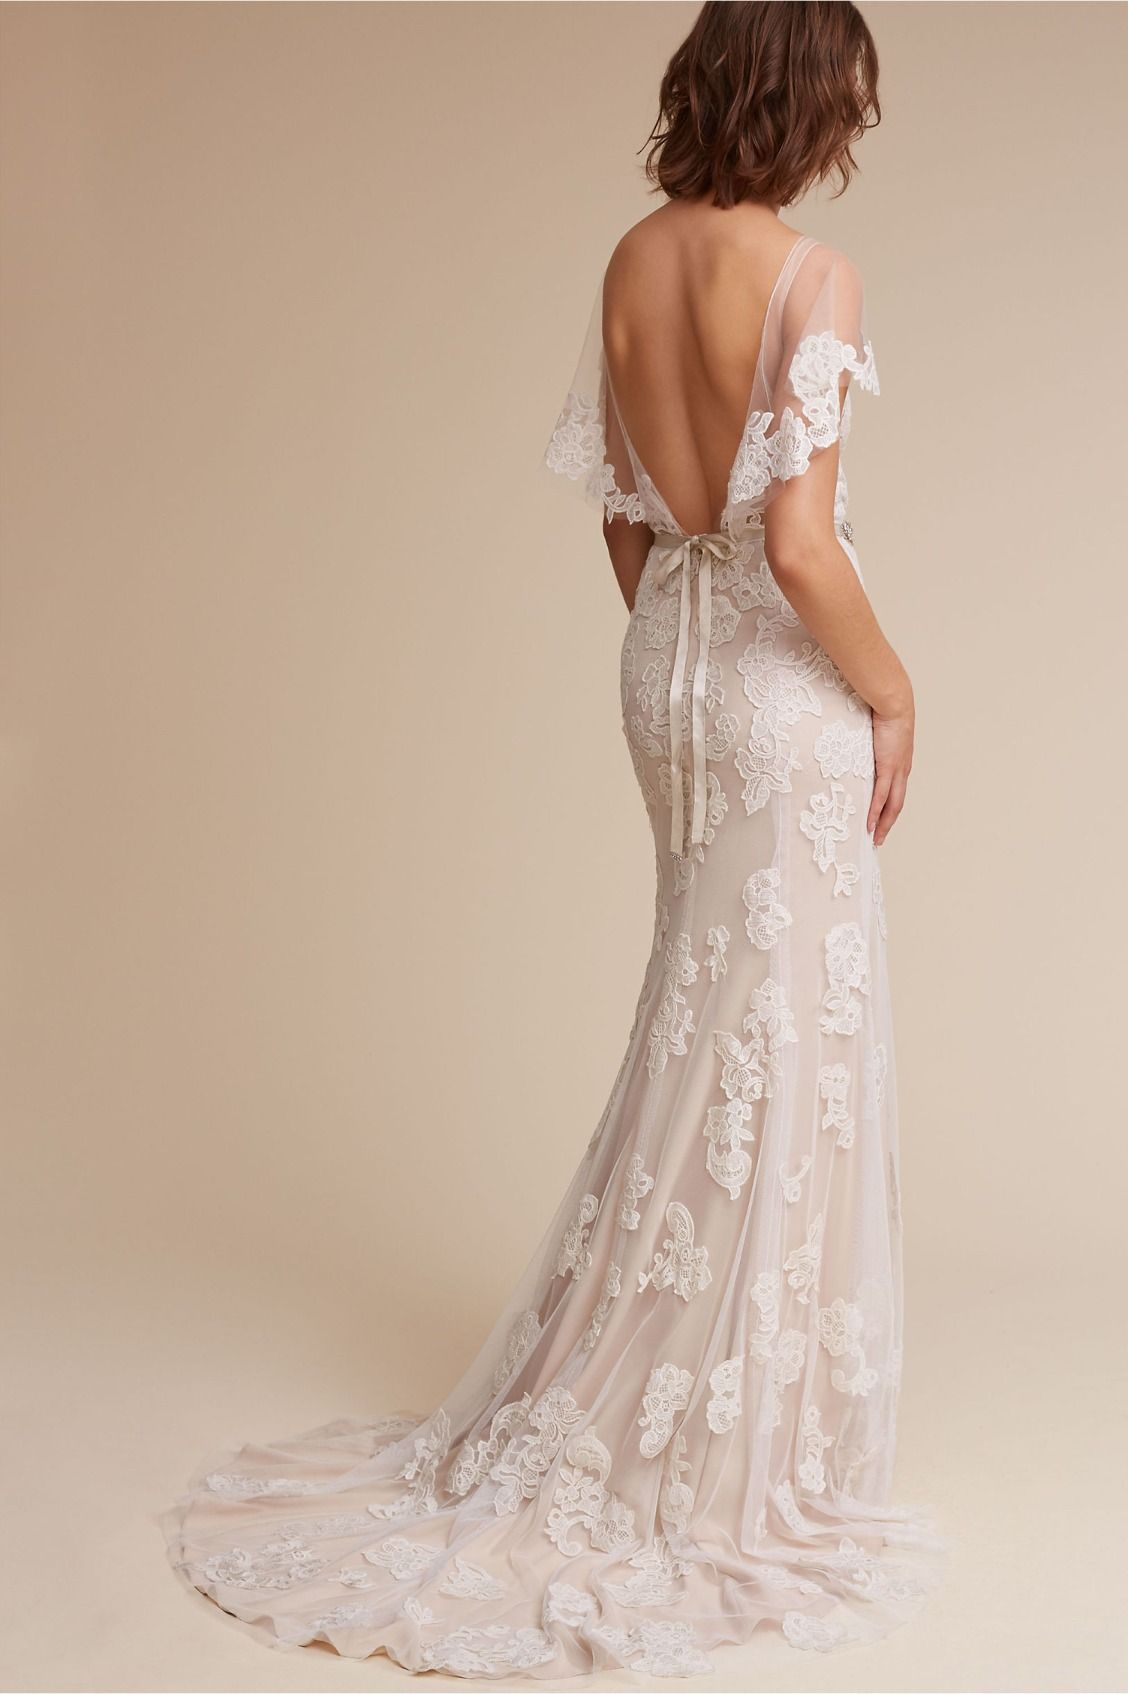 exquisite | Sierra Gown from BHLDN | The Bohemian Bride | Pinterest ...